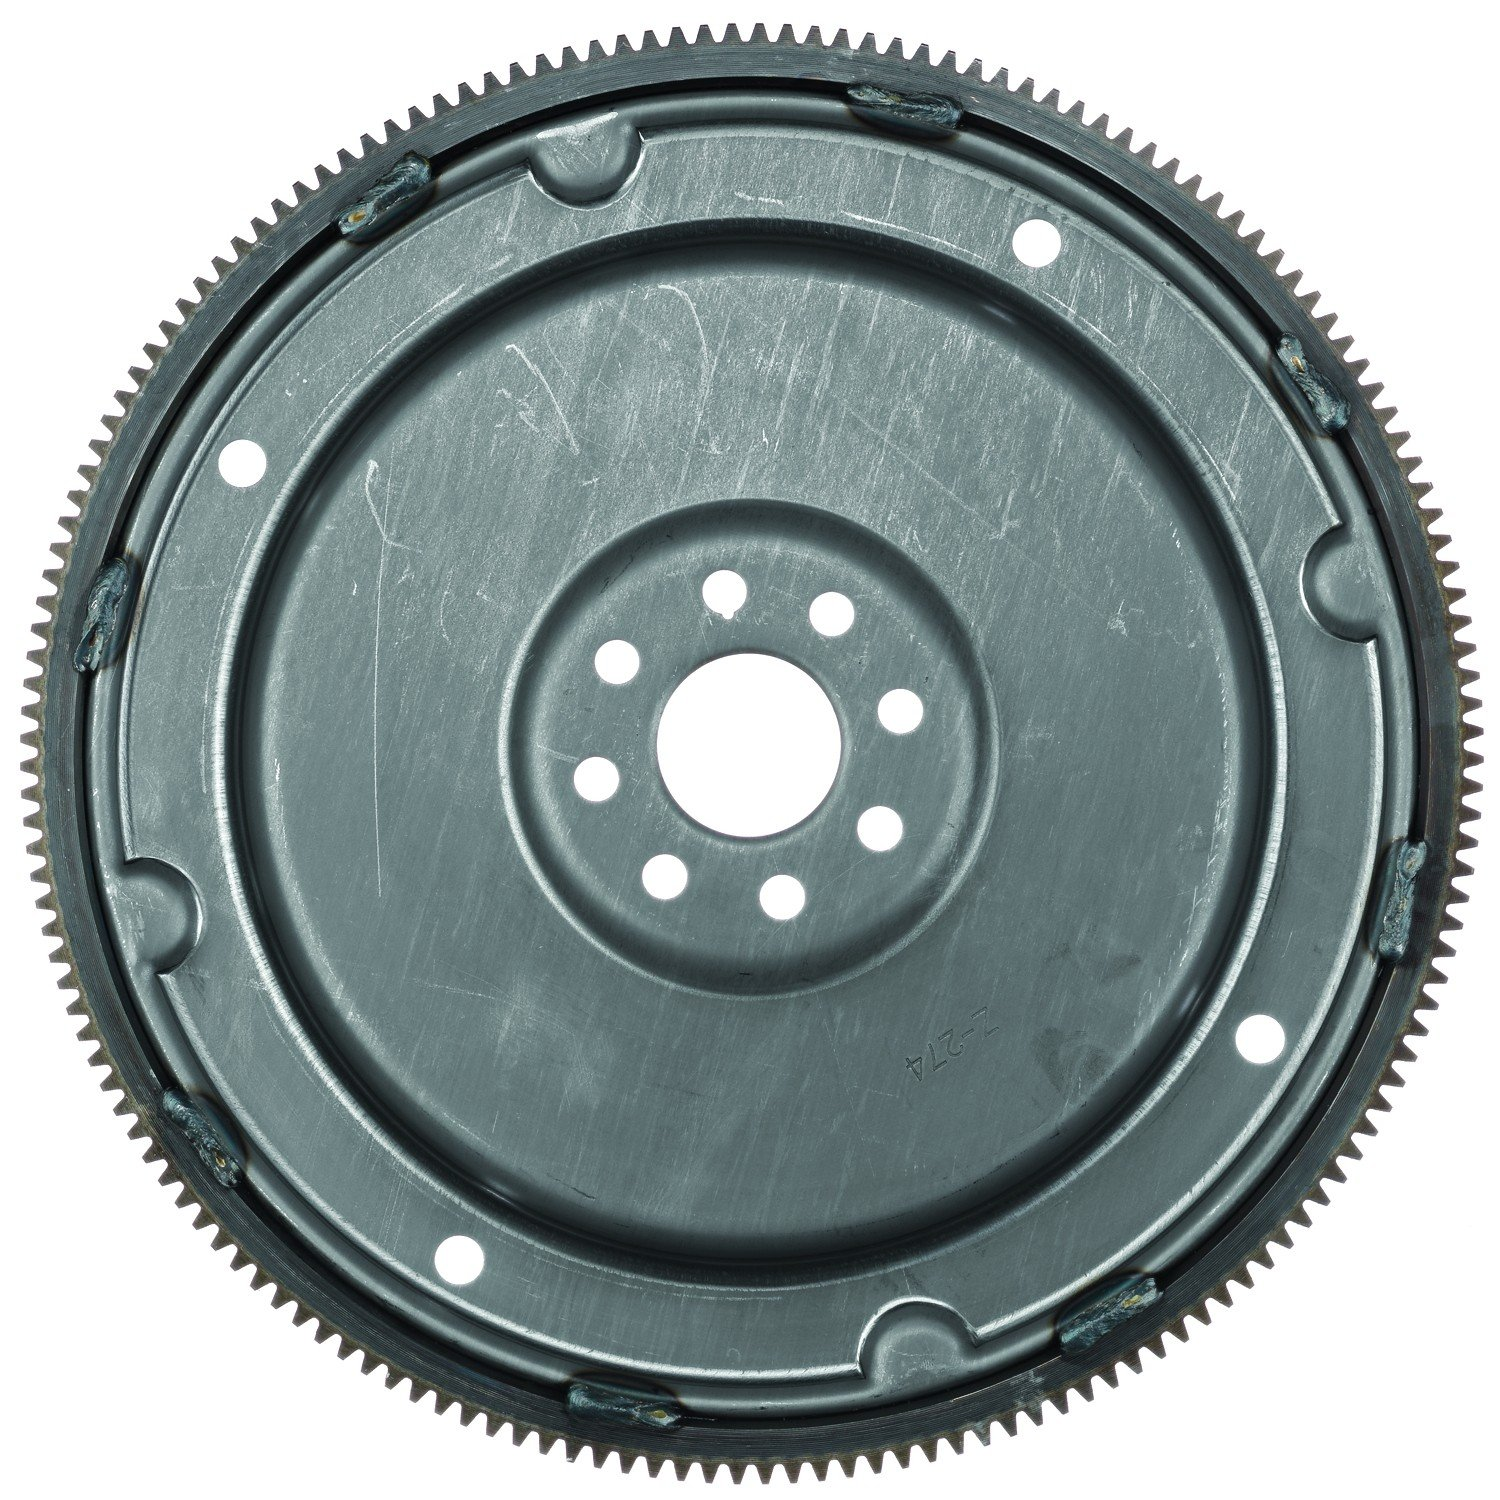 ATP Automotive Z-274 Automatic Transmission Flywheel Flex-Plate by ATP Automotive